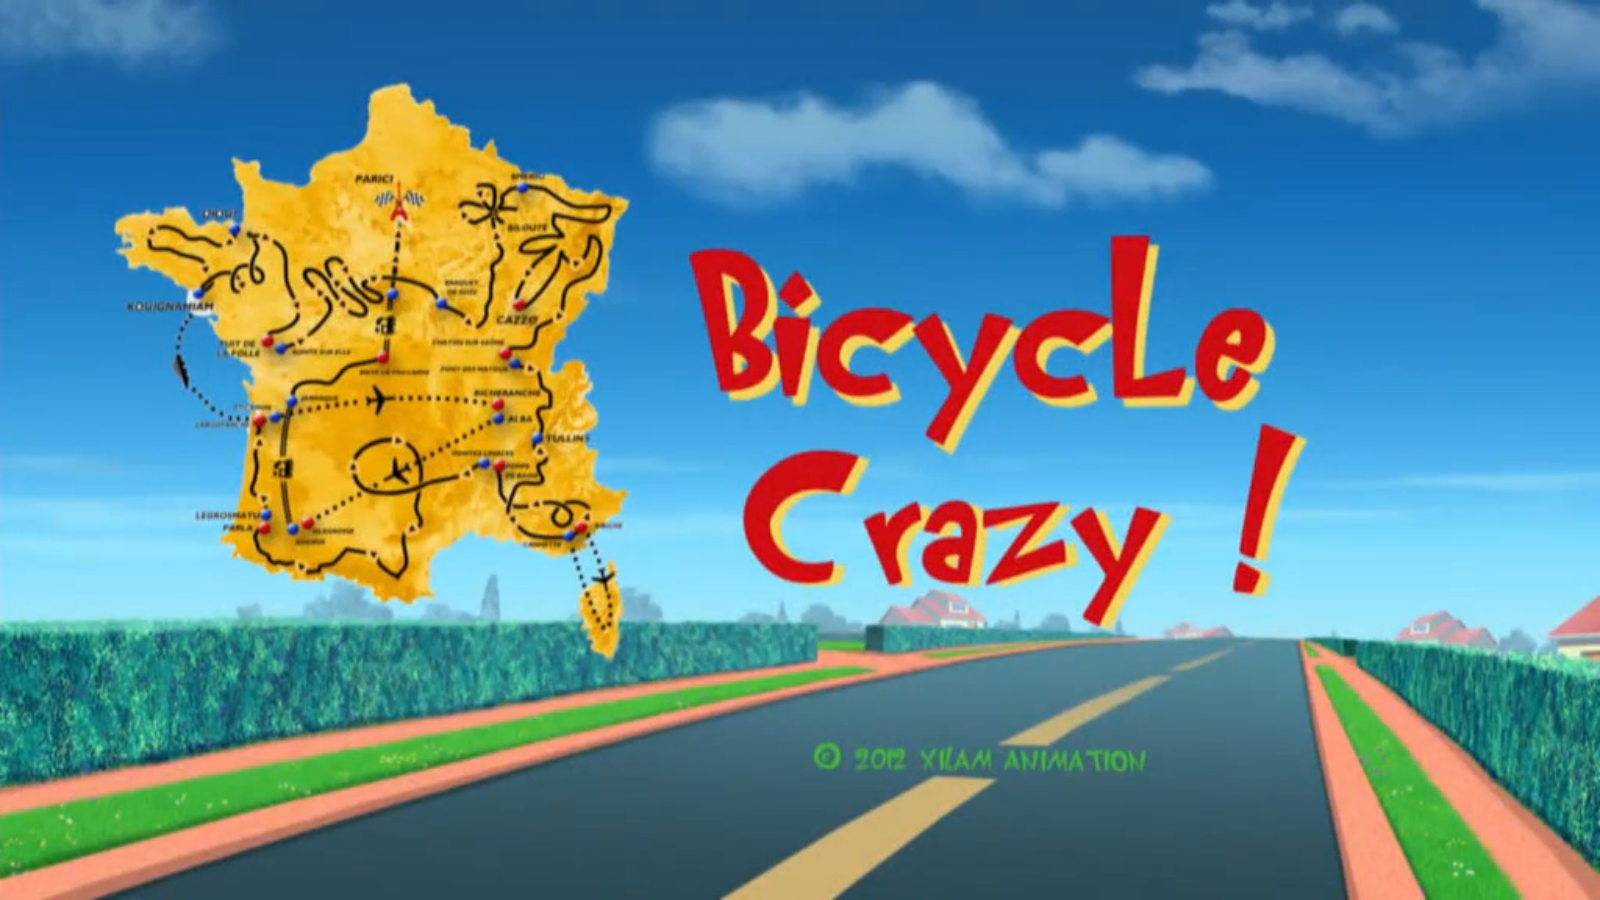 Bicycle Crazy!